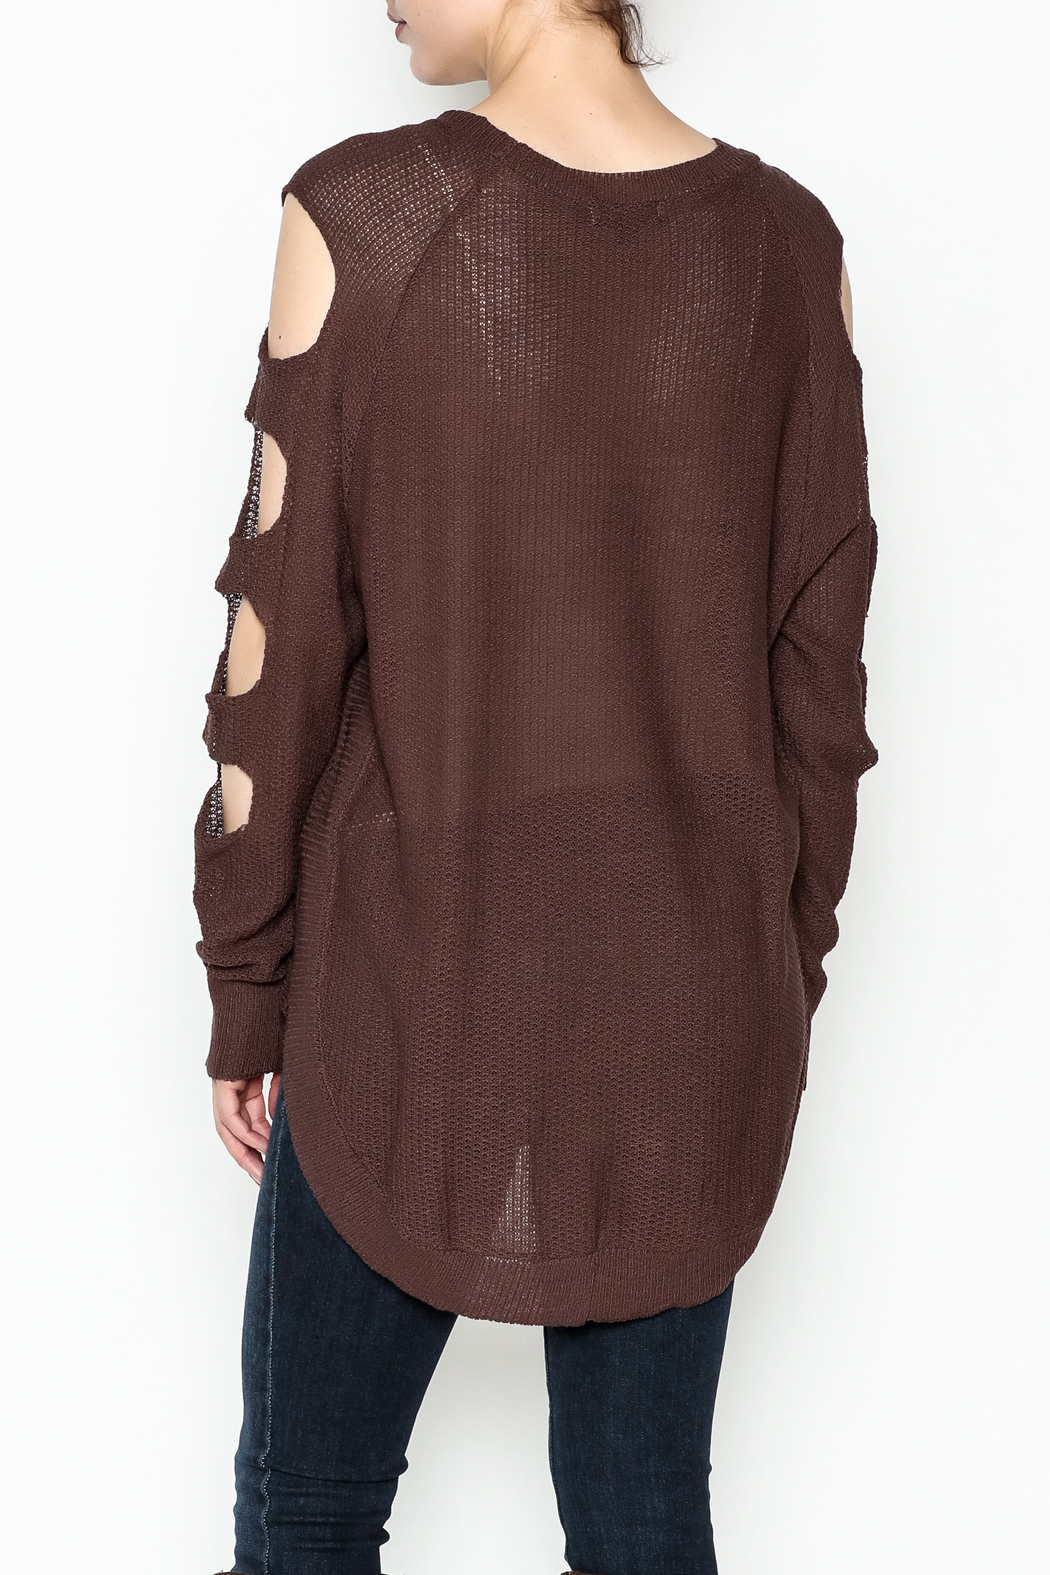 Very J Cutout Sleeve Sweater - Back Cropped Image